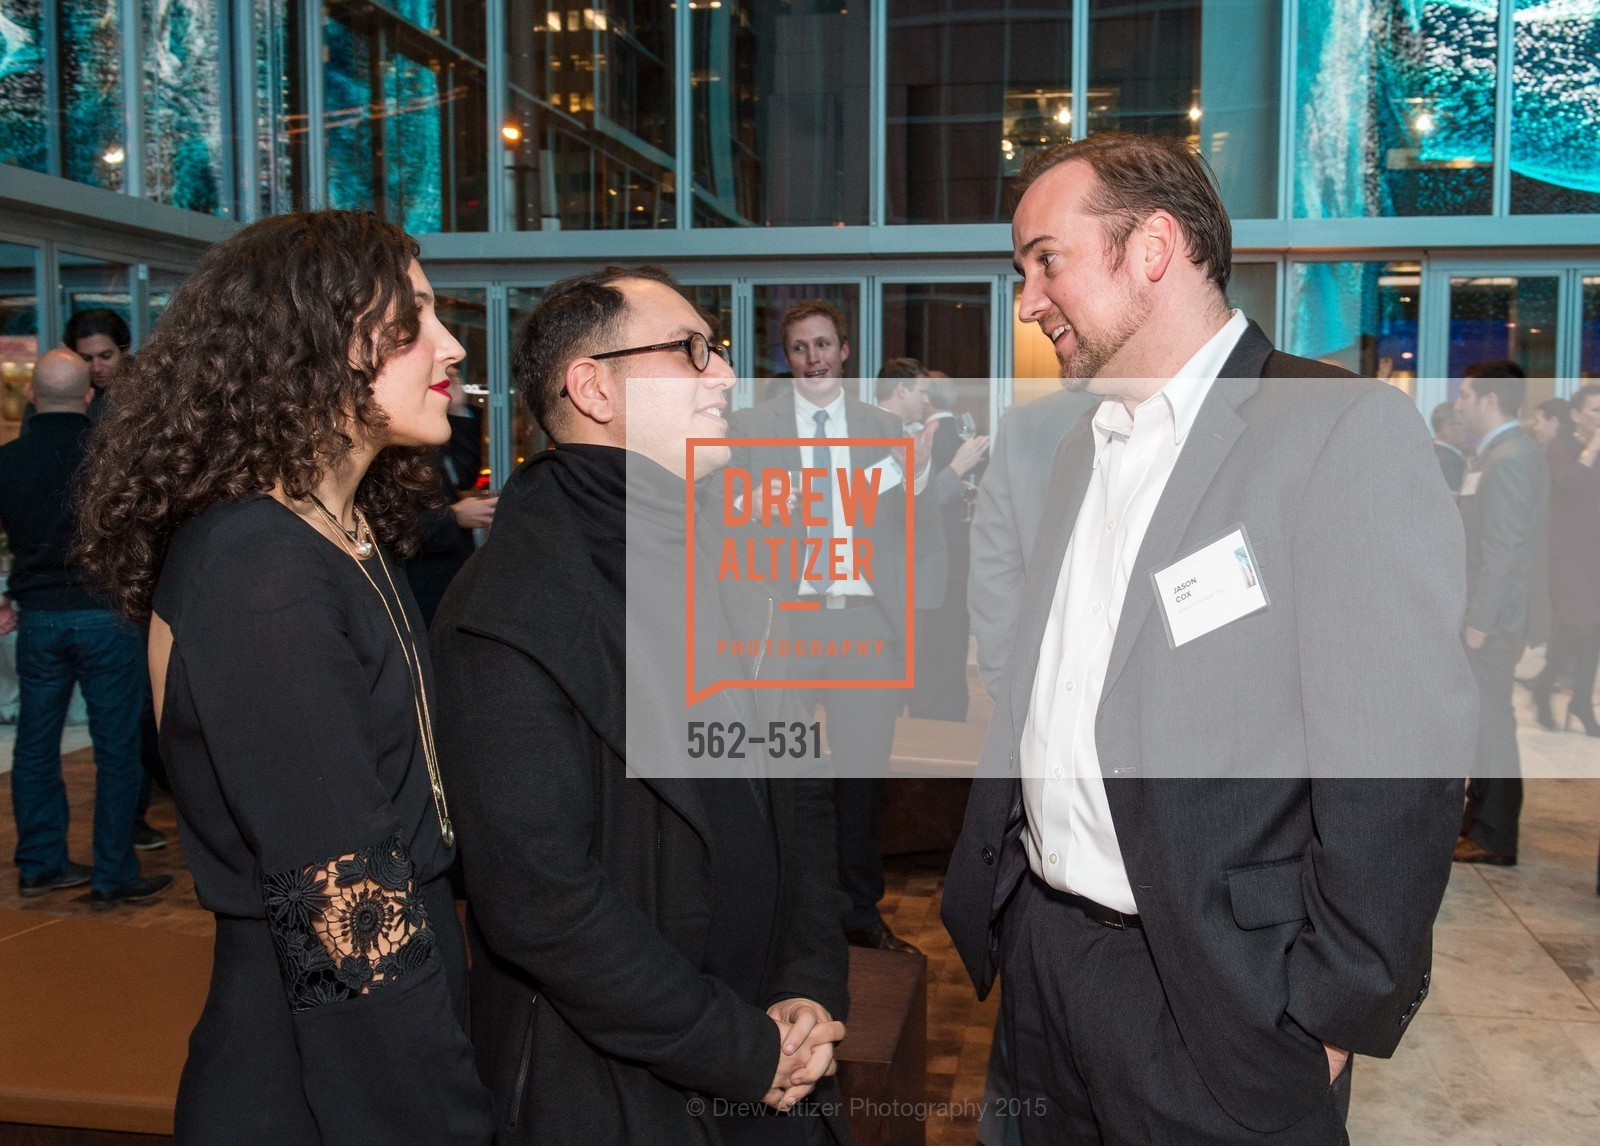 Efsun Erkilic, Refik Anadol, Jason Cox, Kilroy Unveiling Presents Virtual Depictions: San Francisco by Refik Anadol, 350 Mission Street. 350 Mission Street, November 16th, 2015,Drew Altizer, Drew Altizer Photography, full-service event agency, private events, San Francisco photographer, photographer California